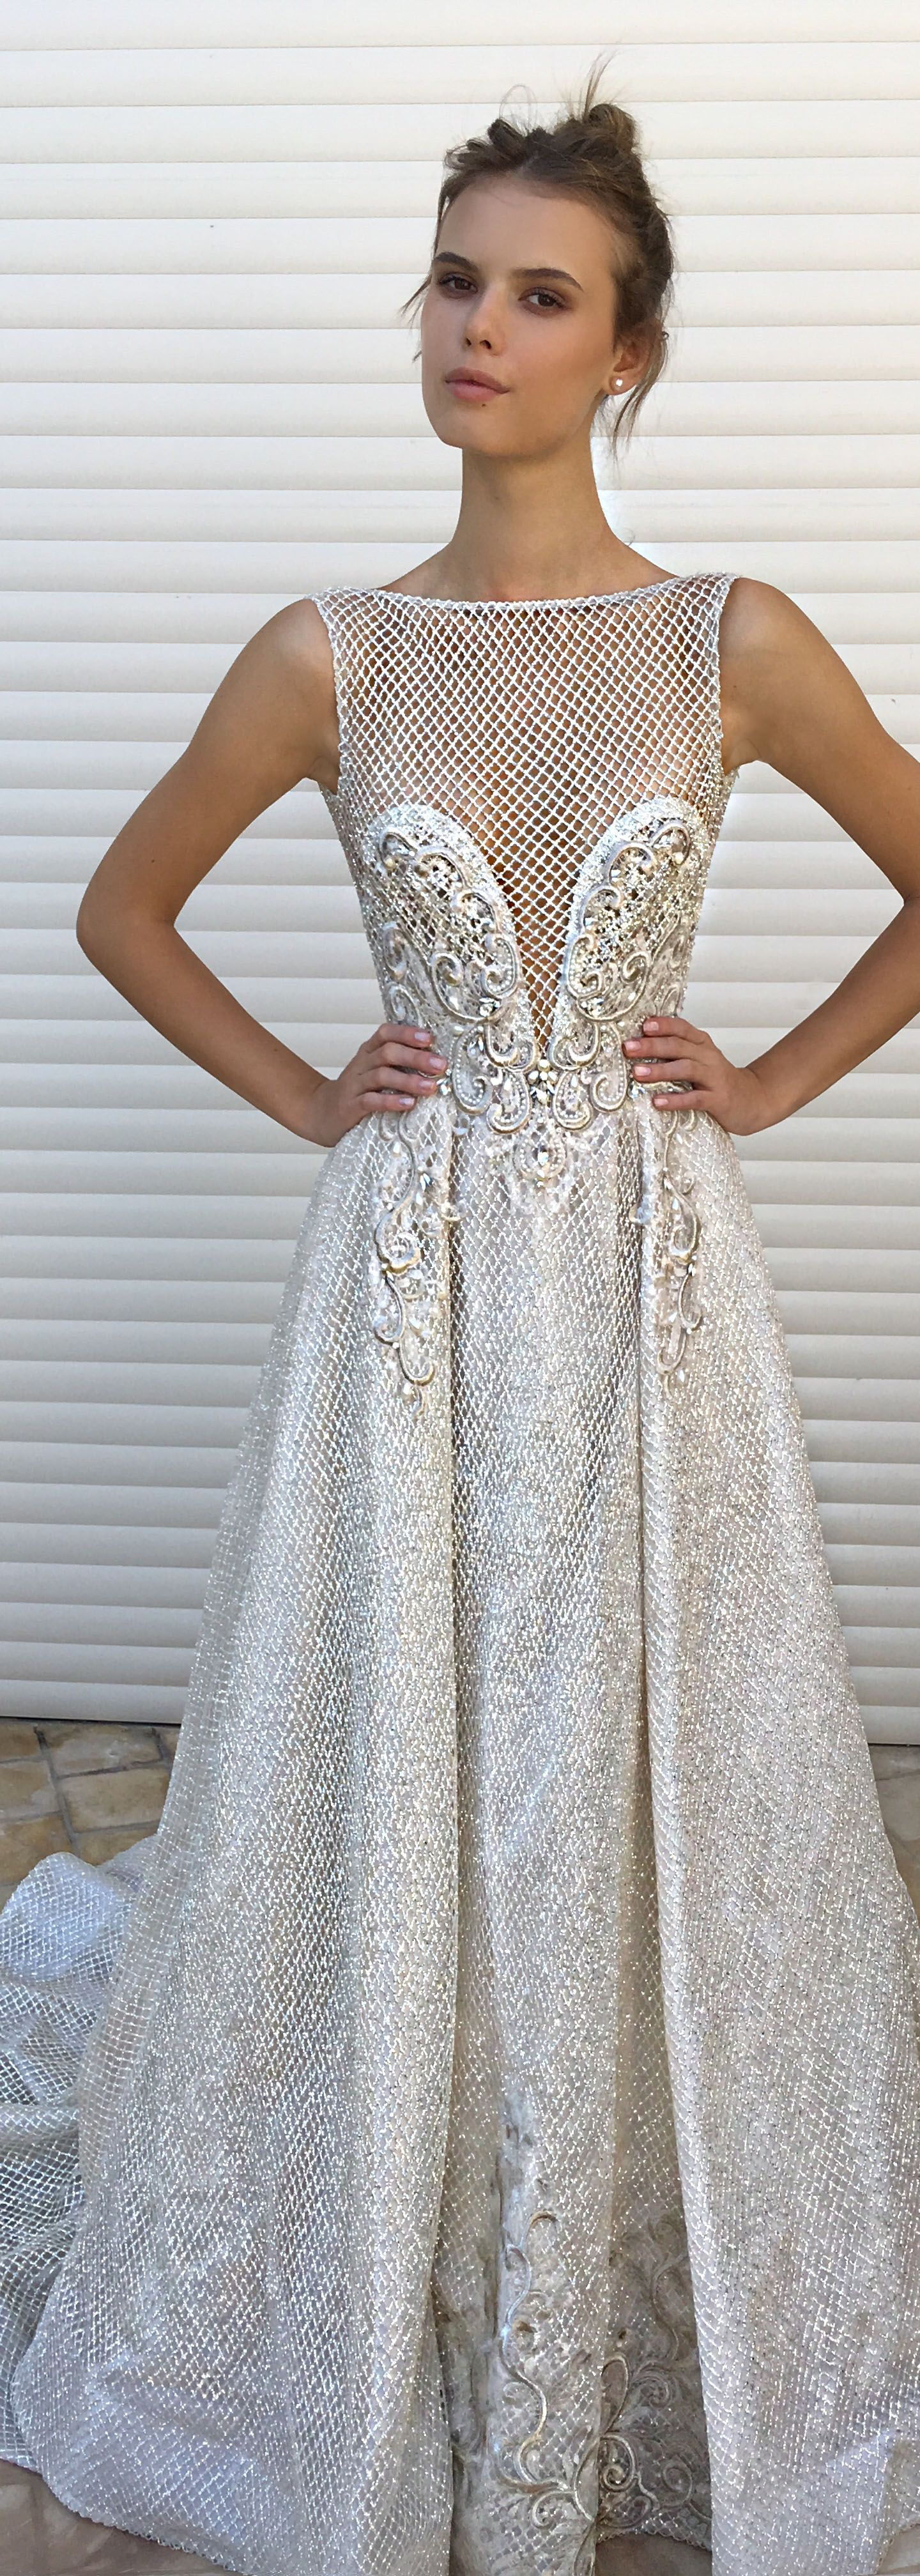 Berta Style 17 111 Now Available For Off The Rack Purchase At Our